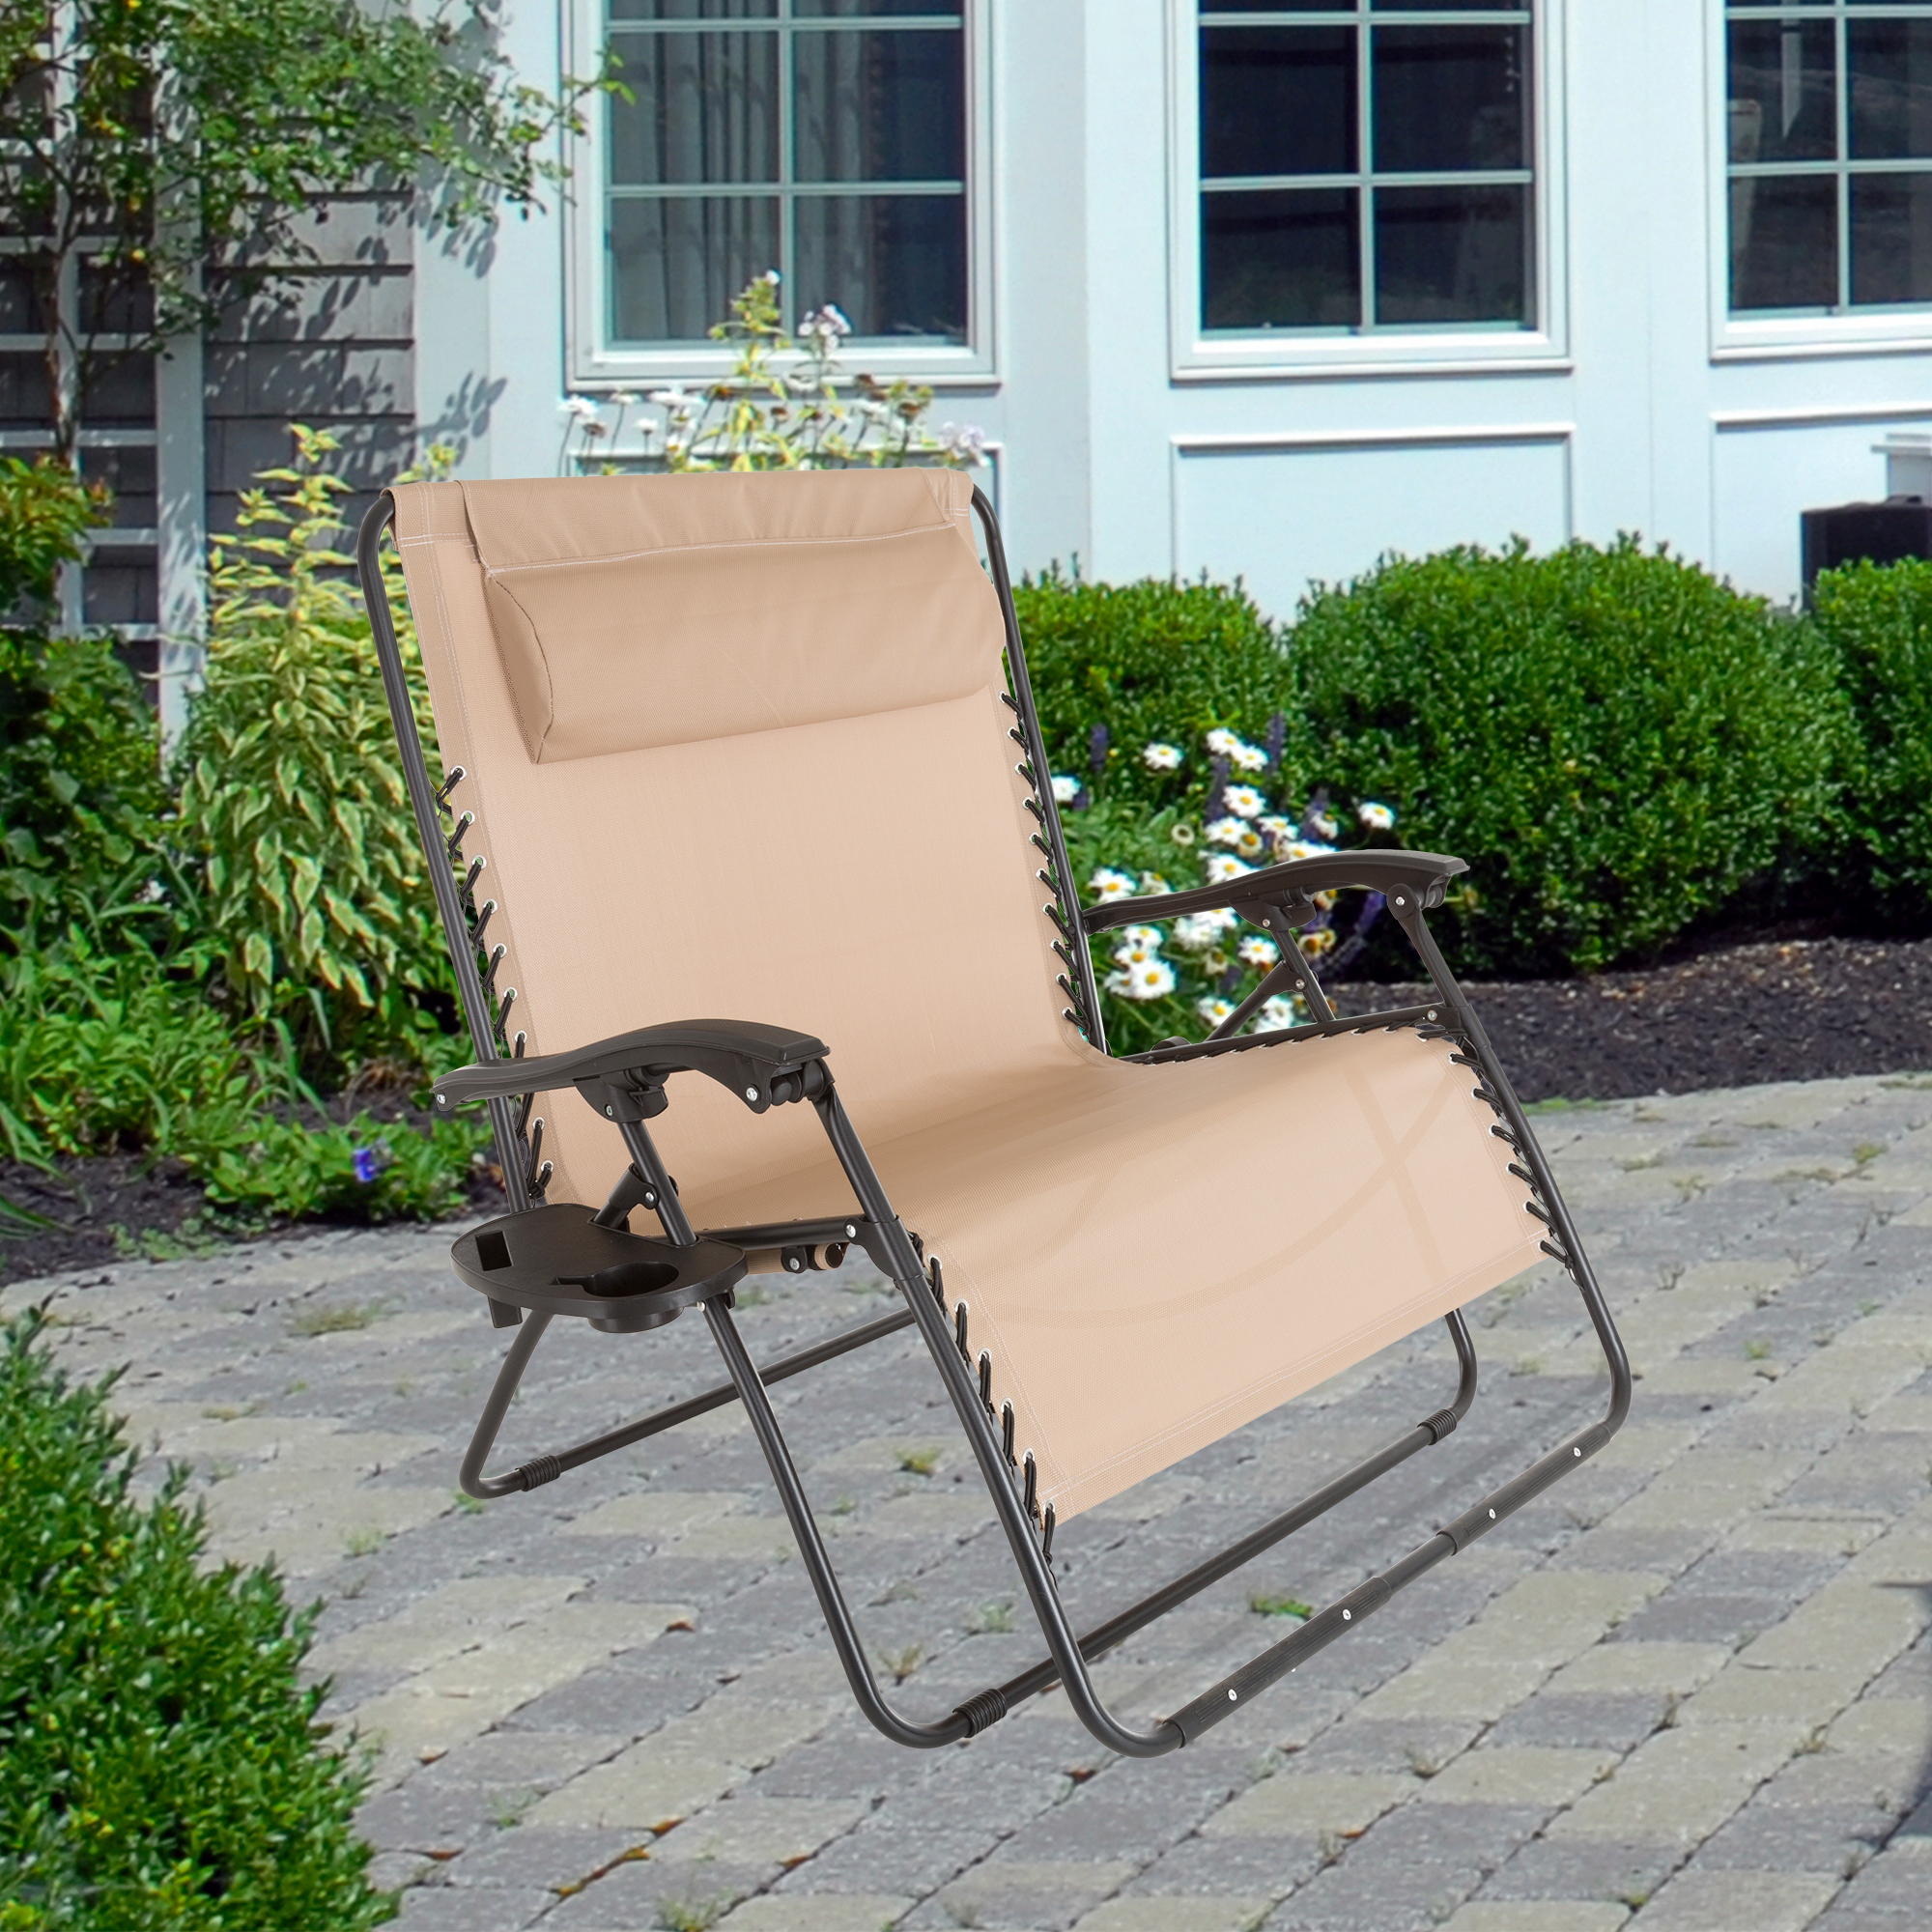 Zero Gravity Loveseat with Pillow and Cup Holder - Beige by Pure Garden